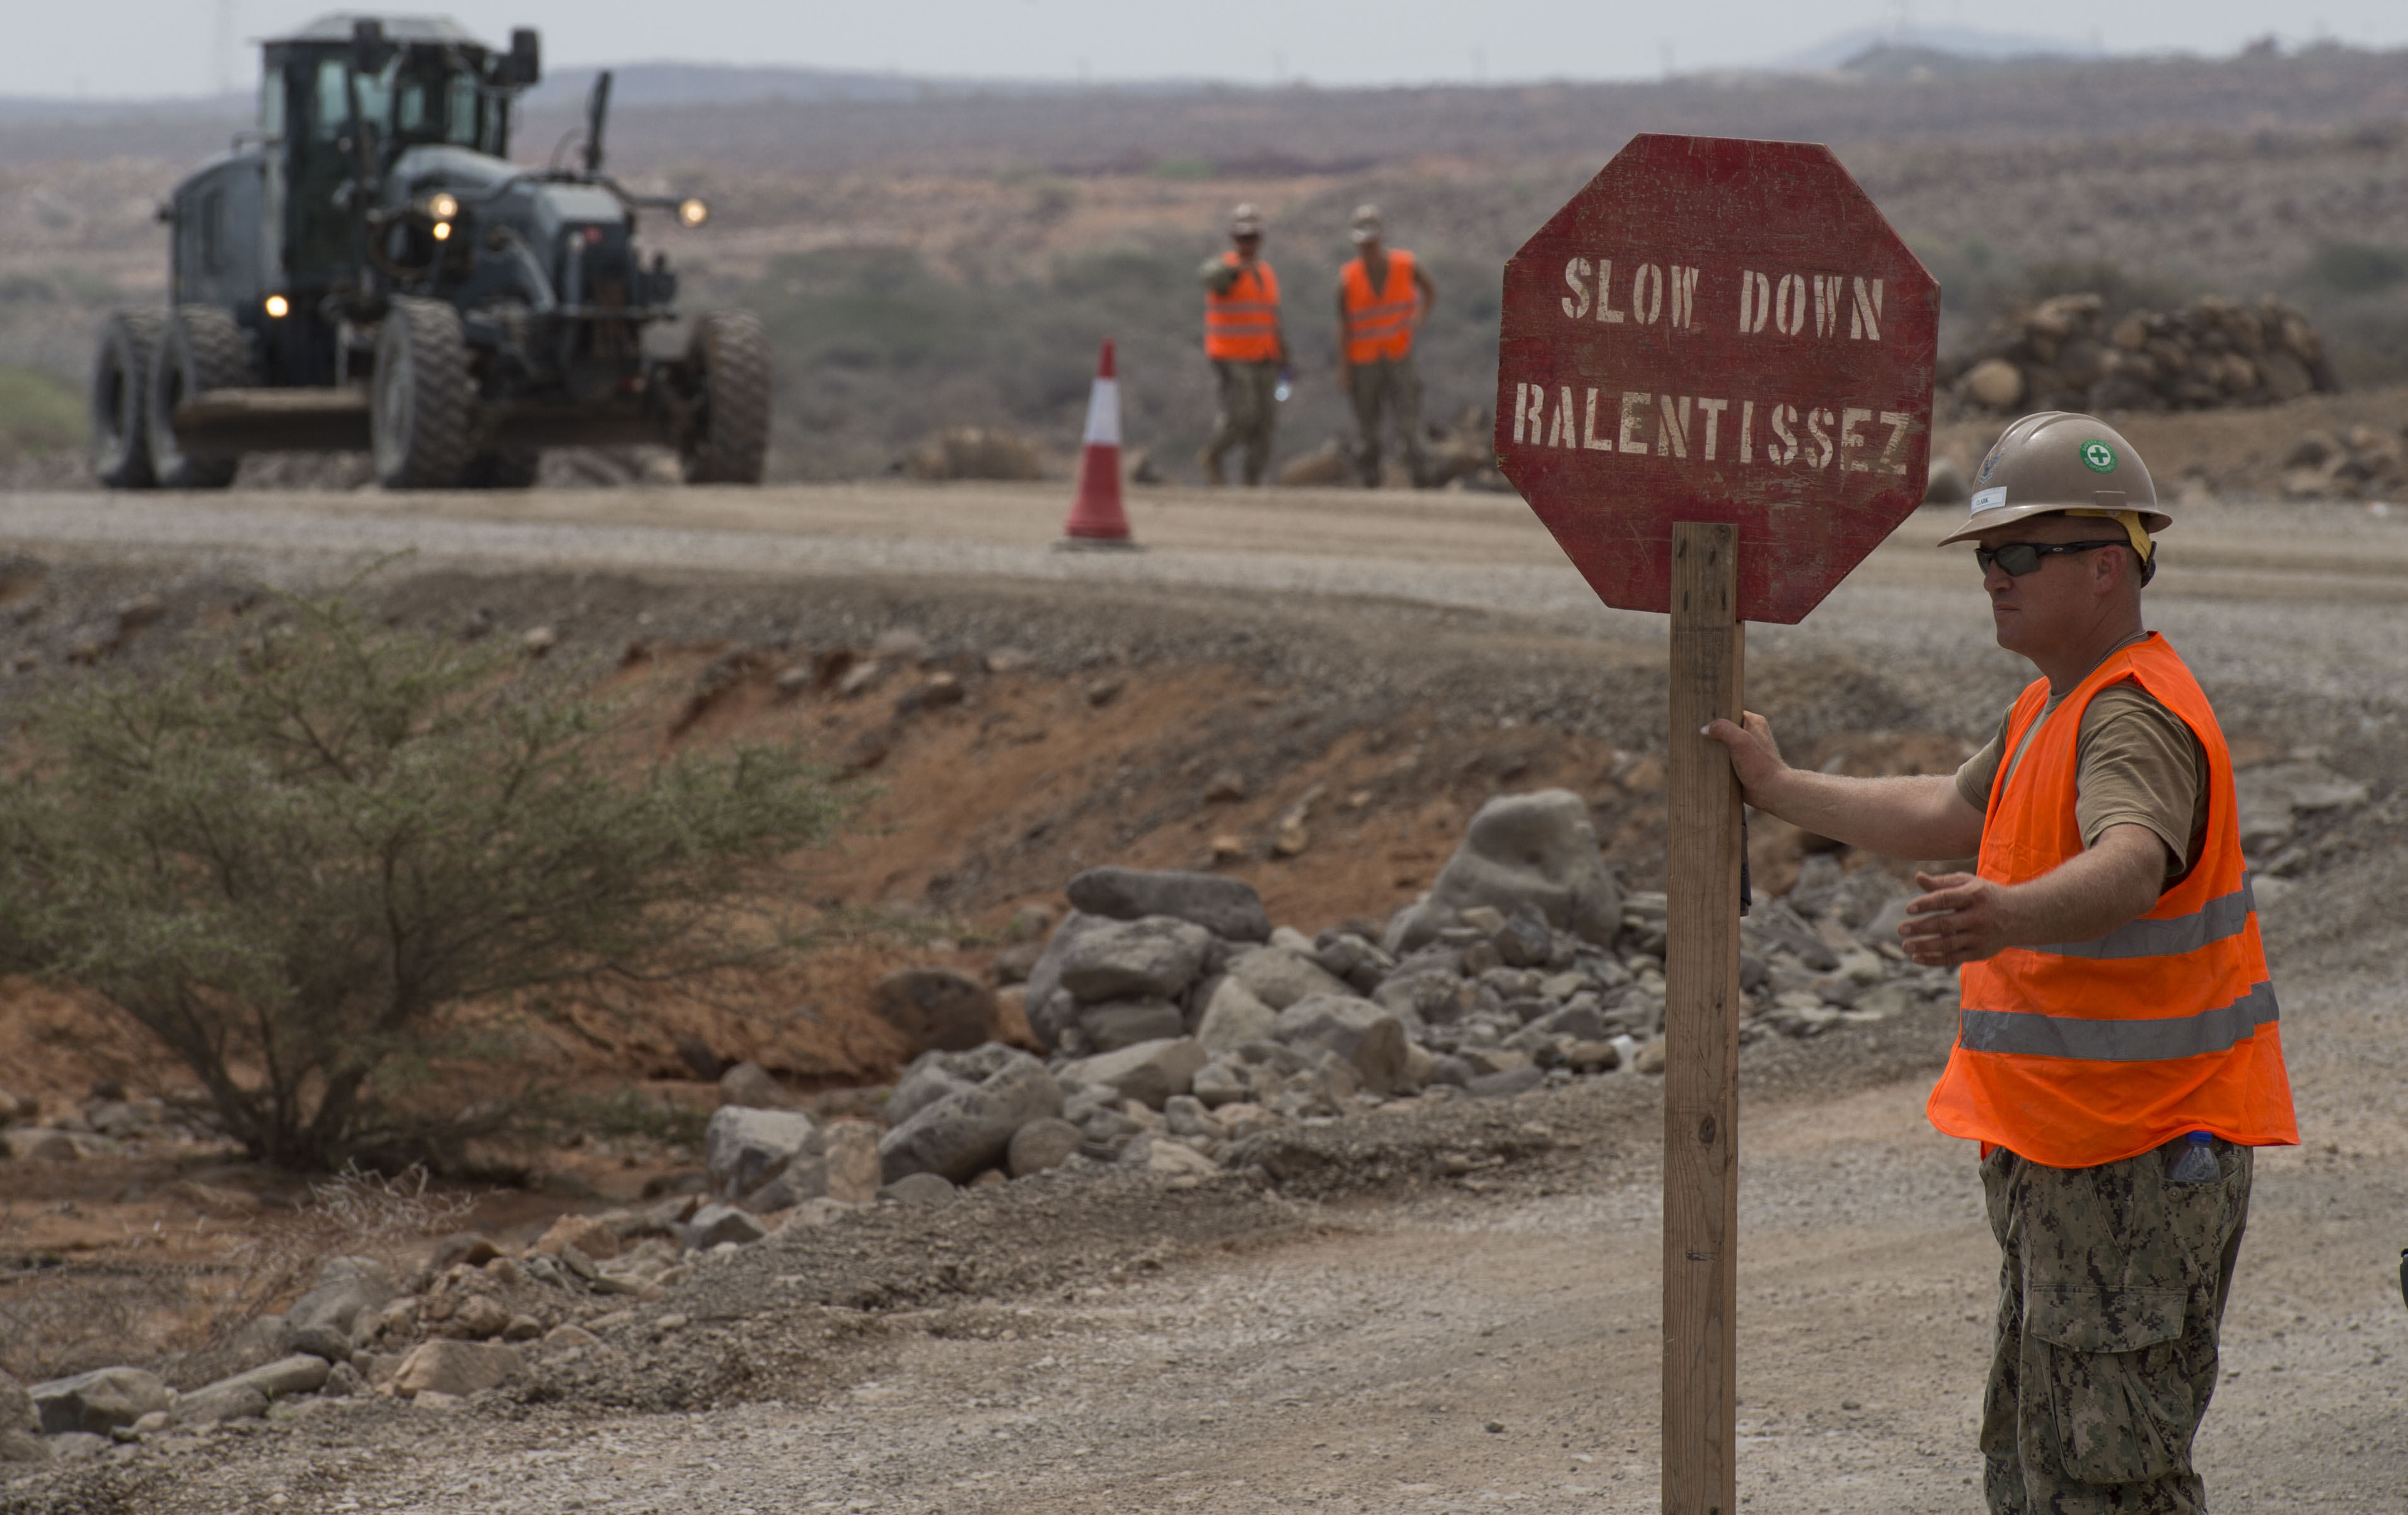 U.S. Navy Petty Officer 2nd Class Michael Clark, Naval Mobile Construction Battalion 22 construction mechanic, directs traffic during road construction May 2, 2016, at Chebelley, Djibouti. The sailors maintained control of the flow of traffic to ensure the safety of military personnel and traveling civilians. (U.S. Air Force photo by Staff Sgt. Eric Summers Jr.)